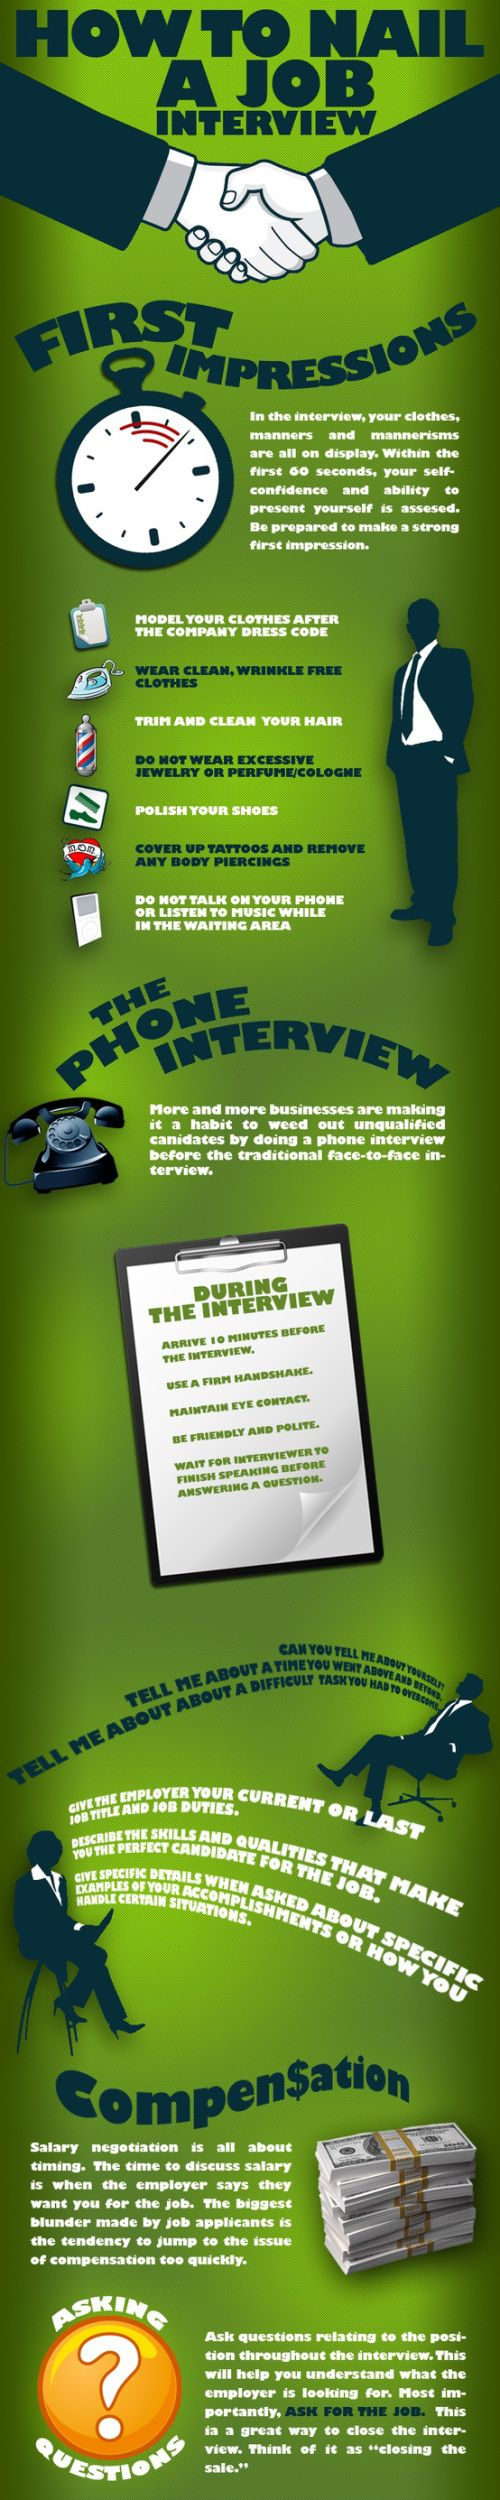 how to nail your next job interview infographic reveals  in hr there is the recruiting processes and in some point in our careers we also interview to obtain a job and this article explains how important it is to